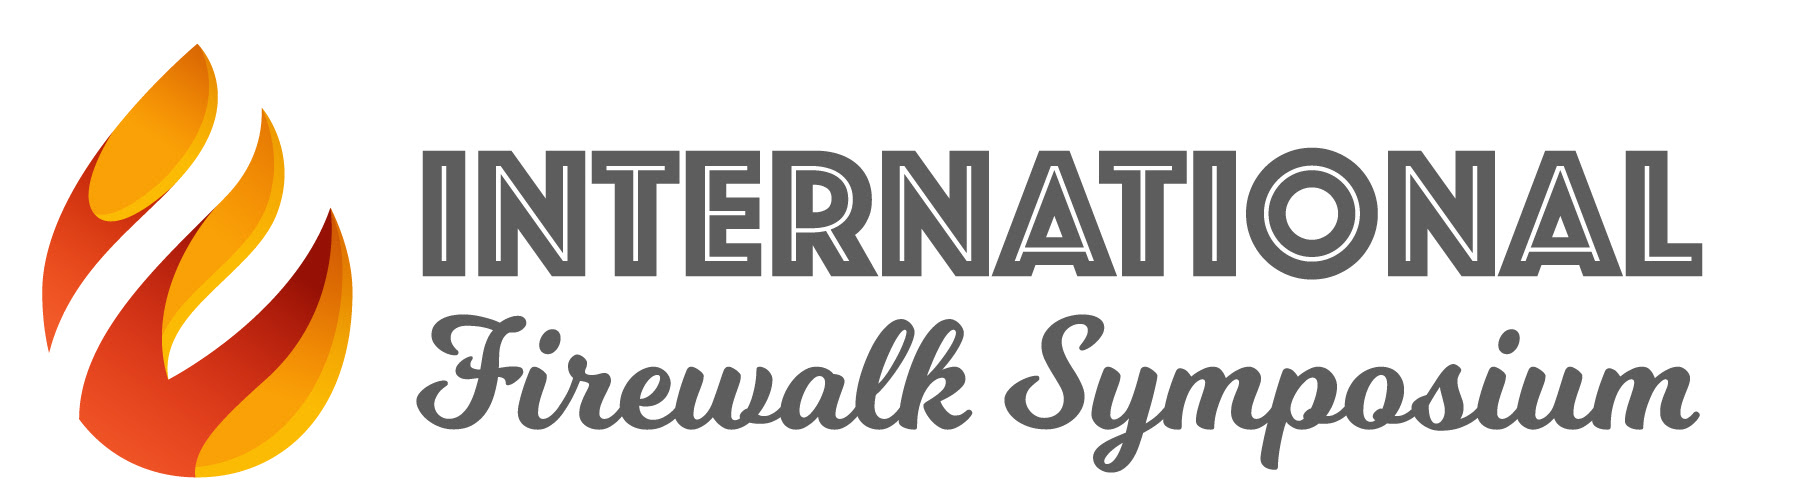 International Firewalking Symposium logo